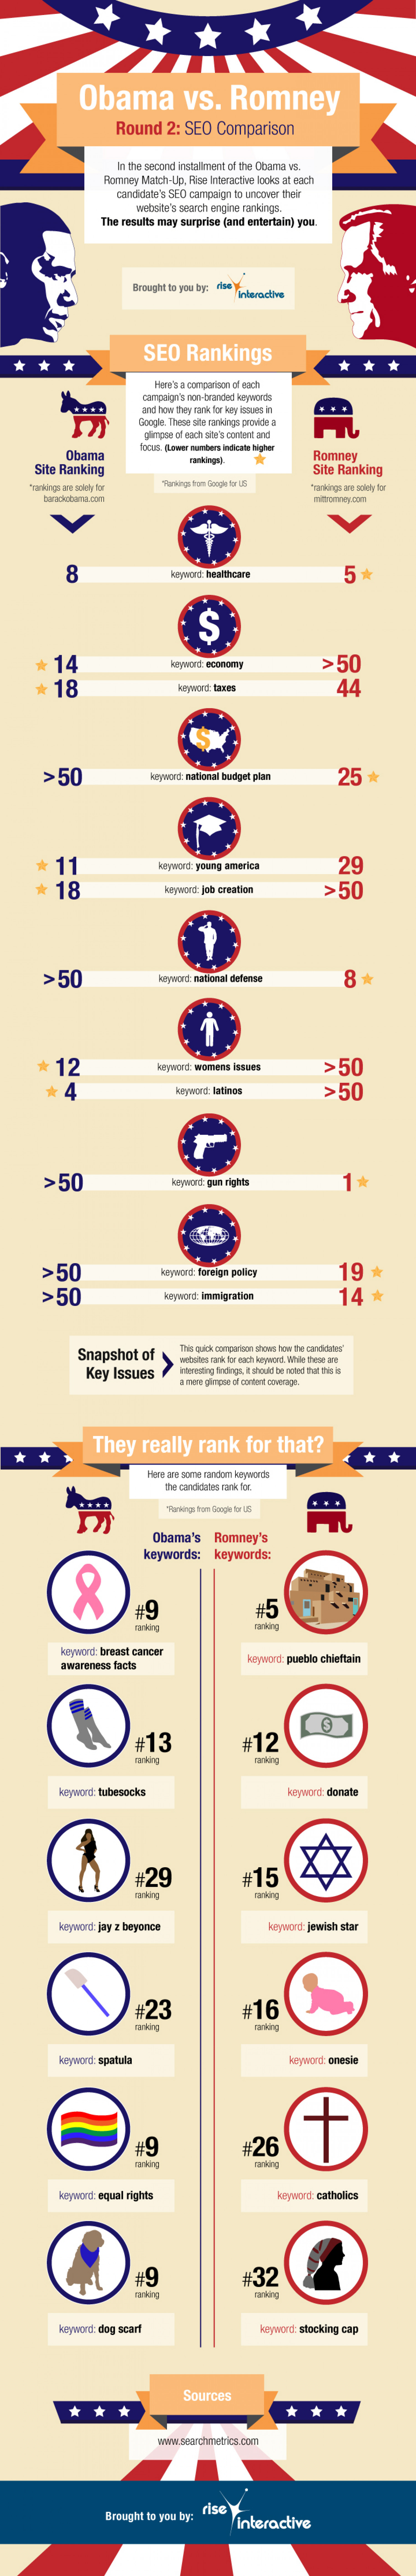 Obama vs. Romney: They really rank for that? Infographic